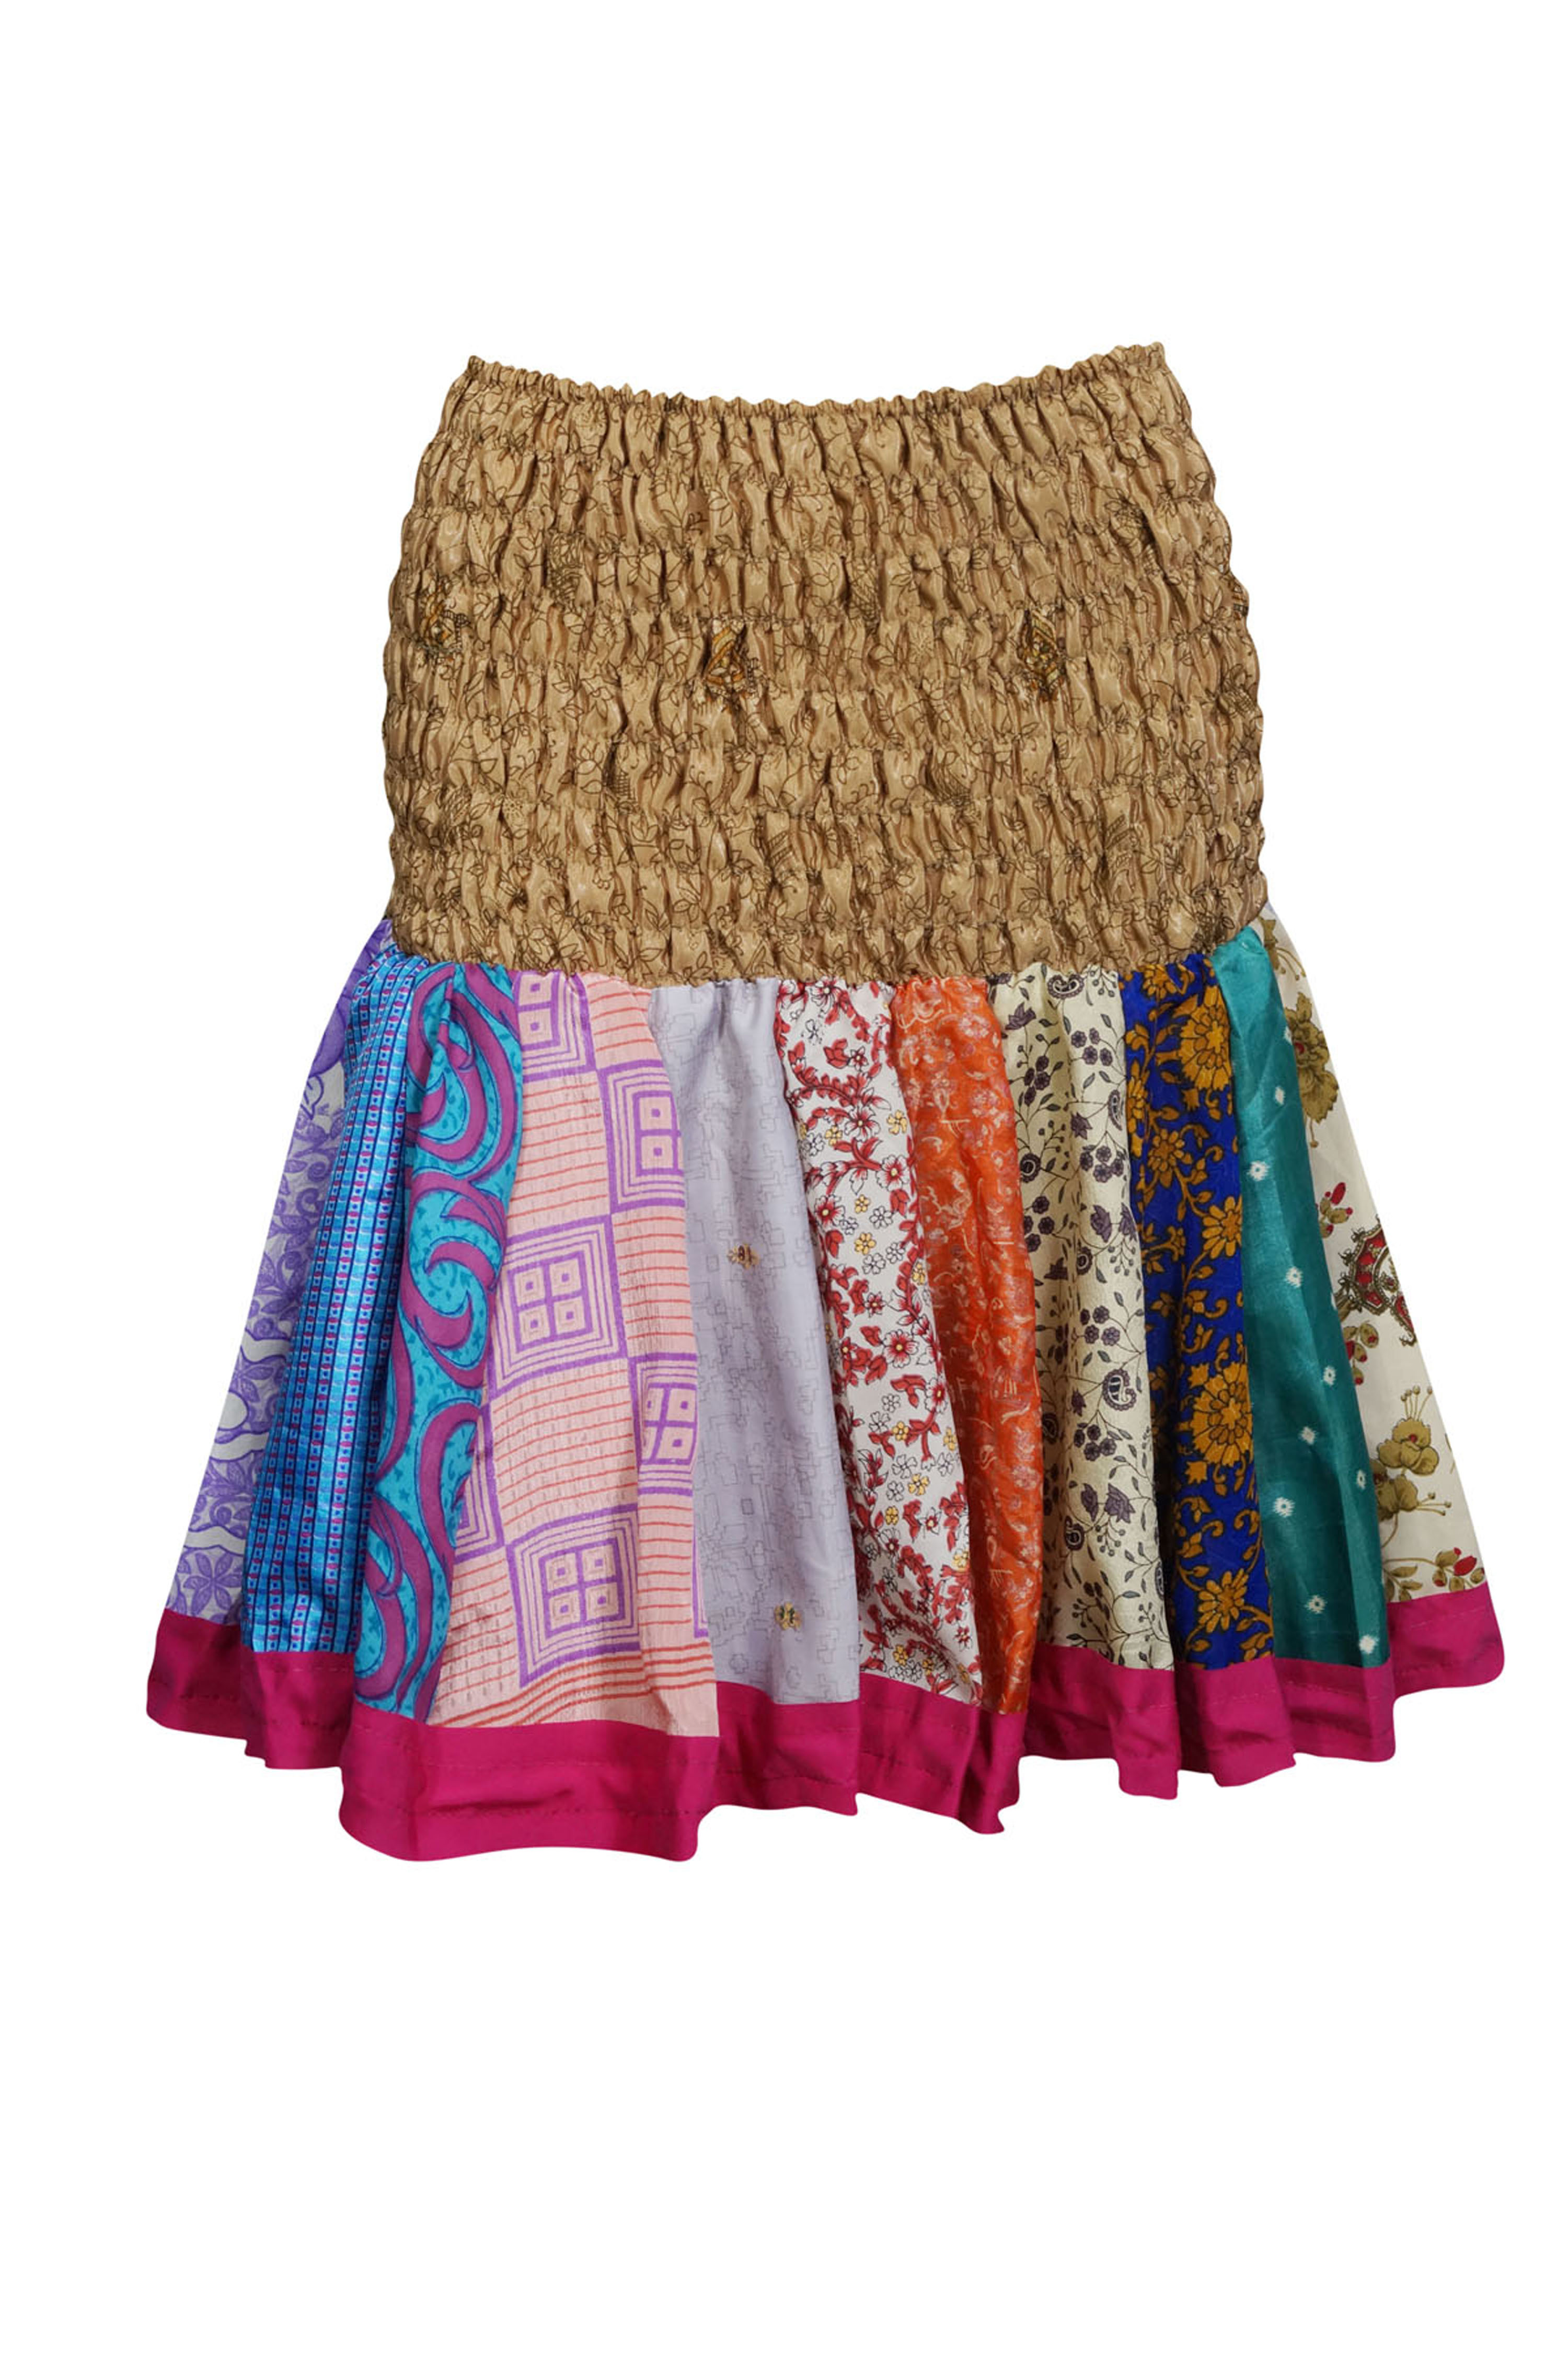 Effortless Colorful Silky Printed Boho Chic Mini Flirty Free Size Skirts Full Flare Ruched Waist Summer Style Flowy Short Skirts For Womens